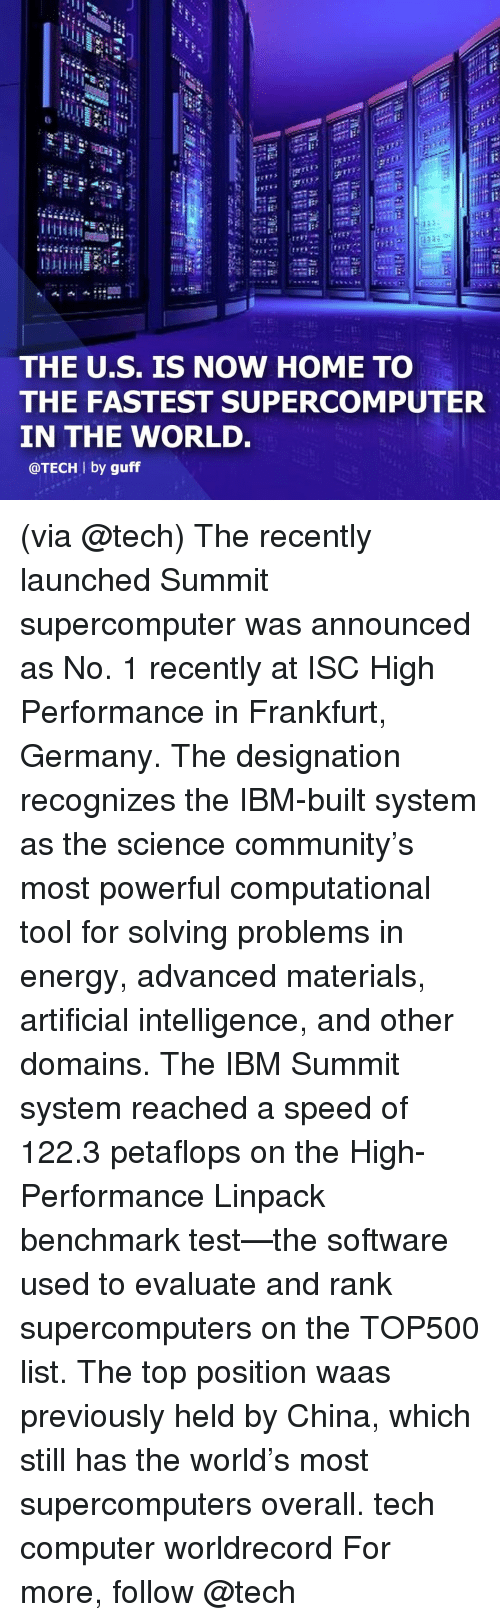 guff: Ct  ri:  THE U.S. IS NOW HOME TO  THE FASTEST SUPERCOMPUTER  IN THE WORLD.  @TECH l by guff (via @tech) The recently launched Summit supercomputer was announced as No. 1 recently at ISC High Performance in Frankfurt, Germany. The designation recognizes the IBM-built system as the science community's most powerful computational tool for solving problems in energy, advanced materials, artificial intelligence, and other domains. The IBM Summit system reached a speed of 122.3 petaflops on the High-Performance Linpack benchmark test—the software used to evaluate and rank supercomputers on the TOP500 list. The top position waas previously held by China, which still has the world's most supercomputers overall. tech computer worldrecord For more, follow @tech